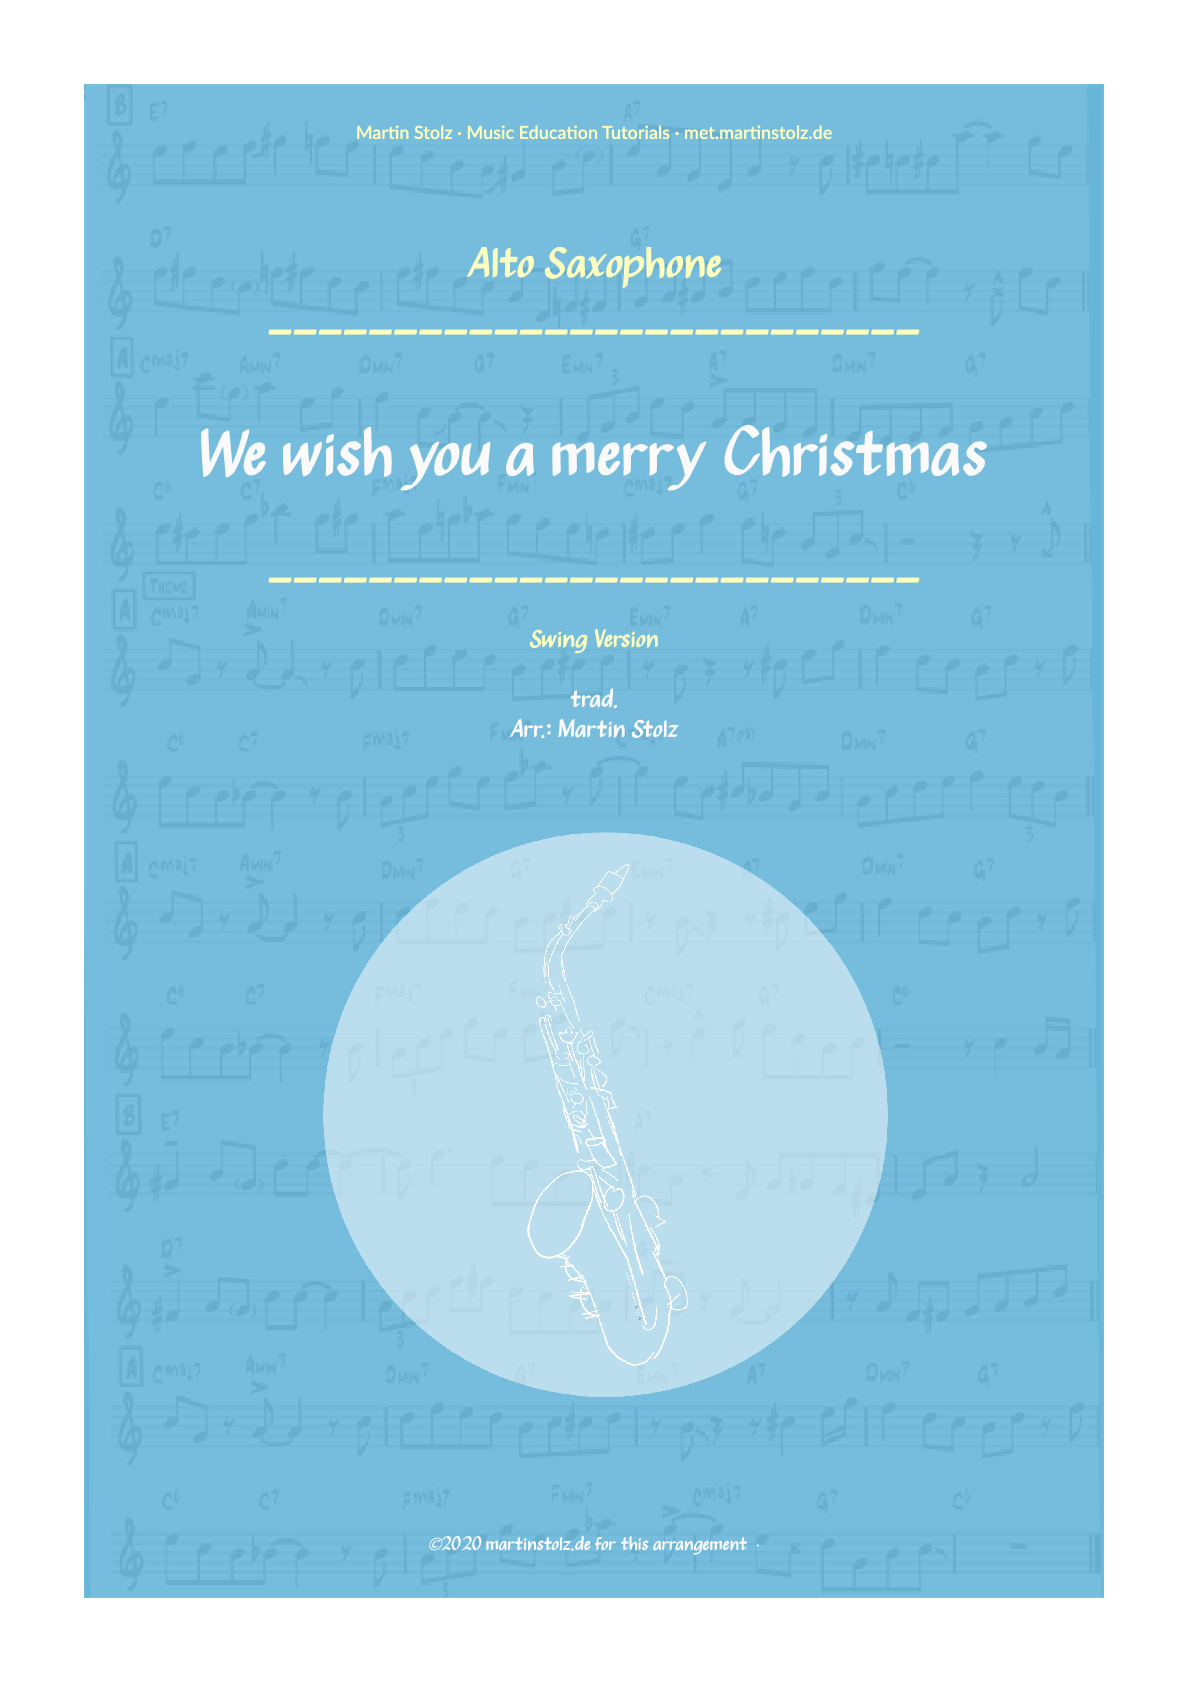 """We wish you a merry Christmas"" (Swing-Version) for Alto Saxophone including Solo Transcription"